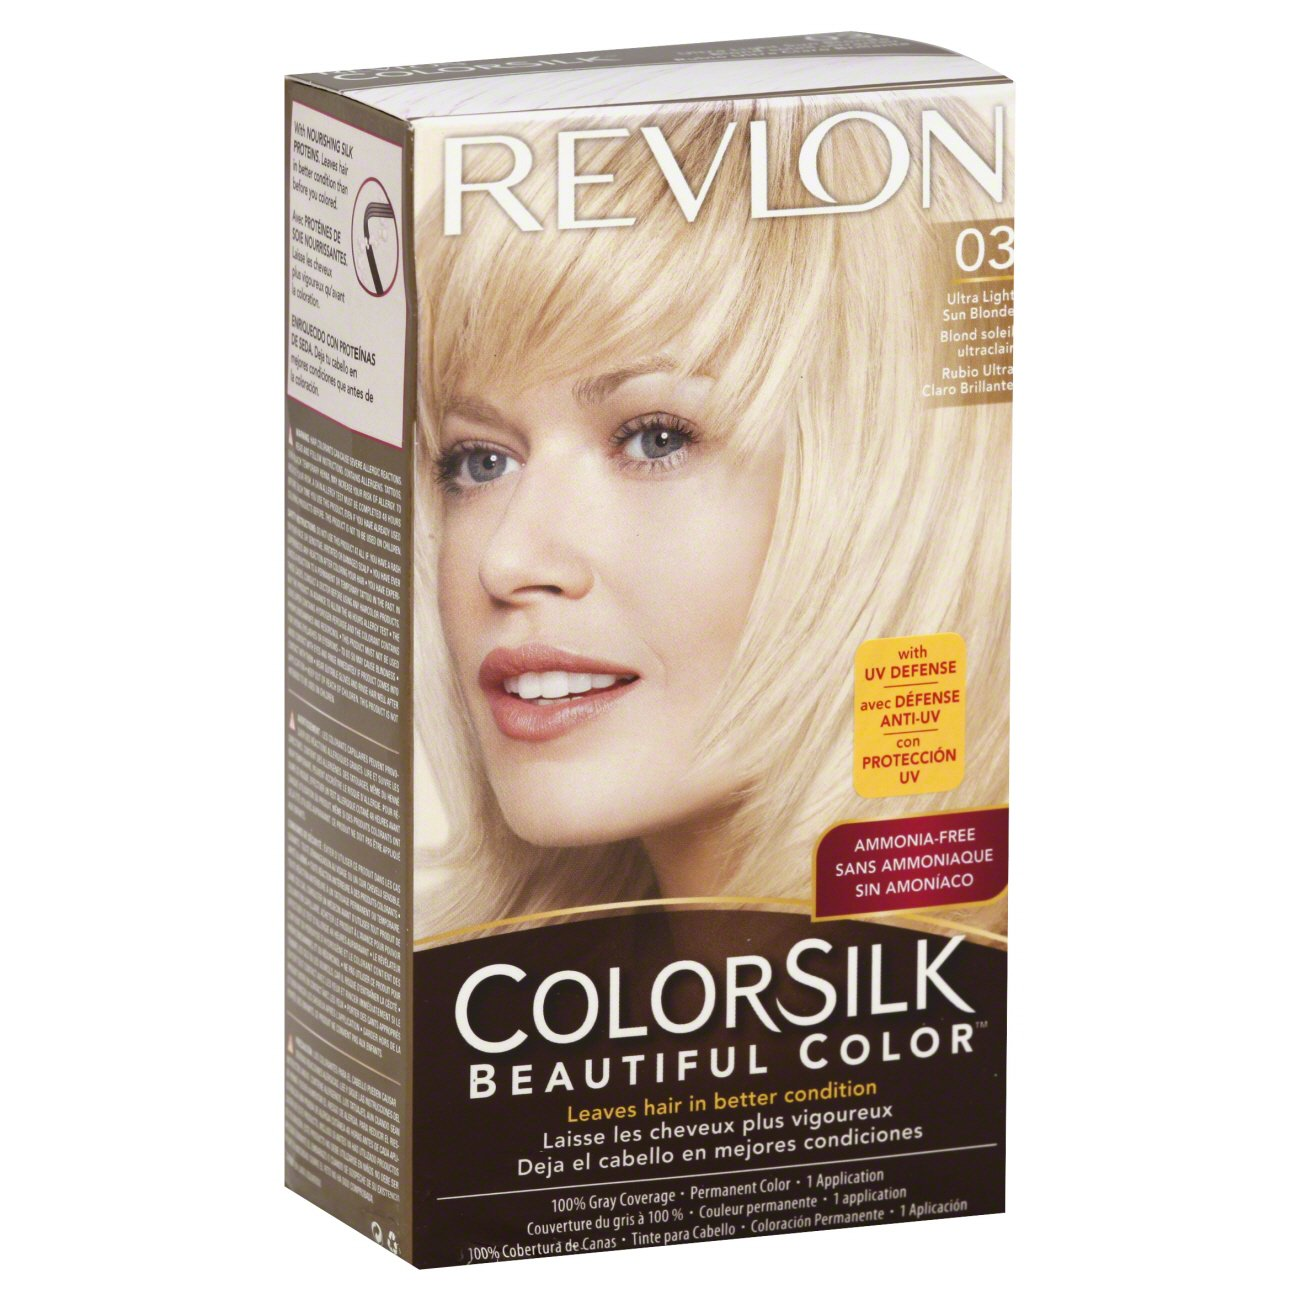 Revlon Colorsilk Beautiful Color 03 Ultra Light Sun Blonde Shop